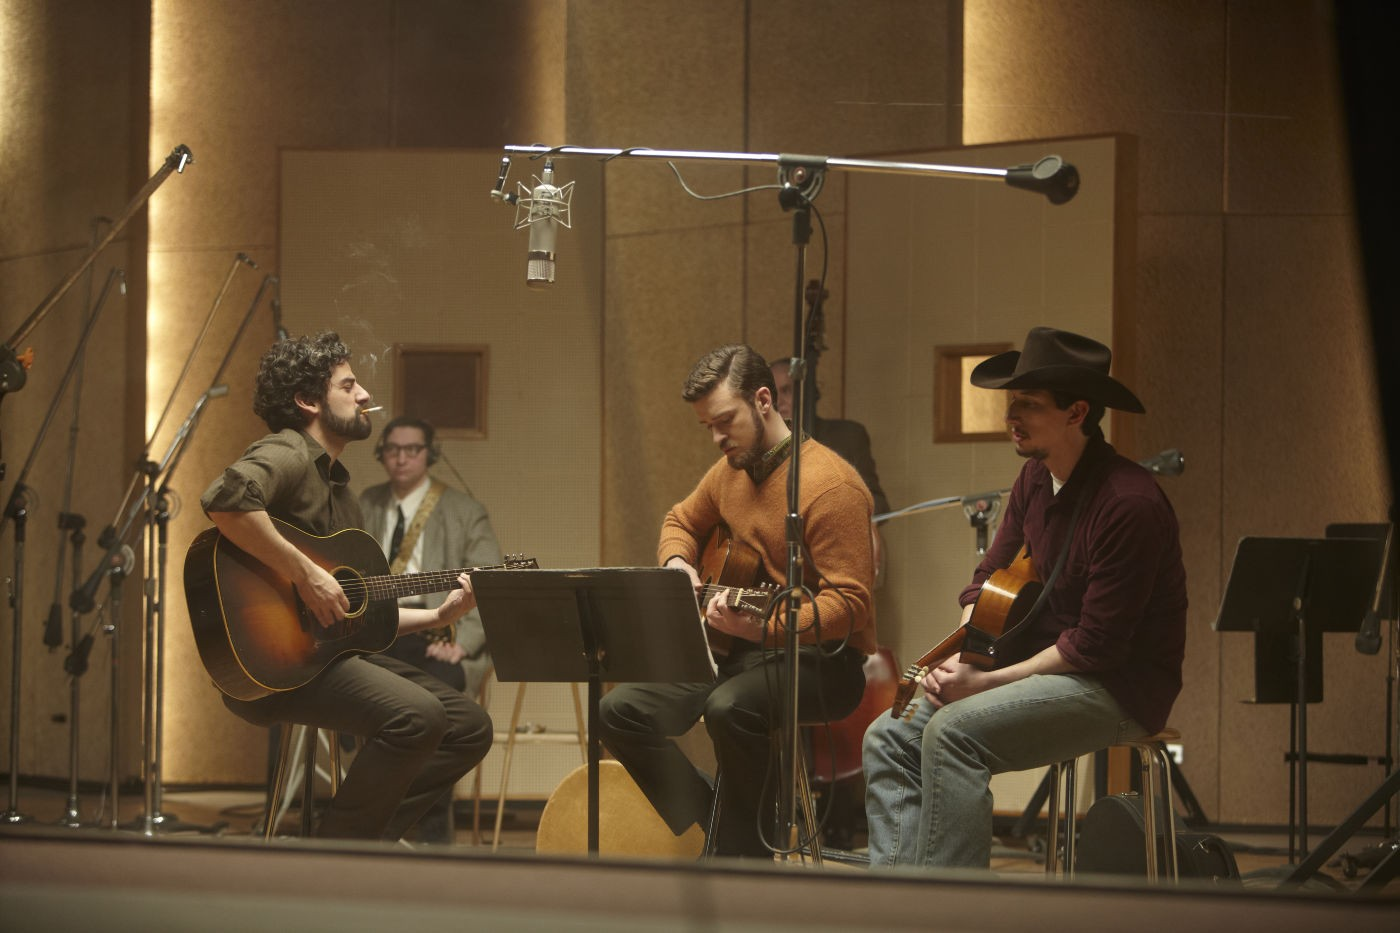 CBS Films will release INSIDE LLEWYN DAVIS on December 6, 2013